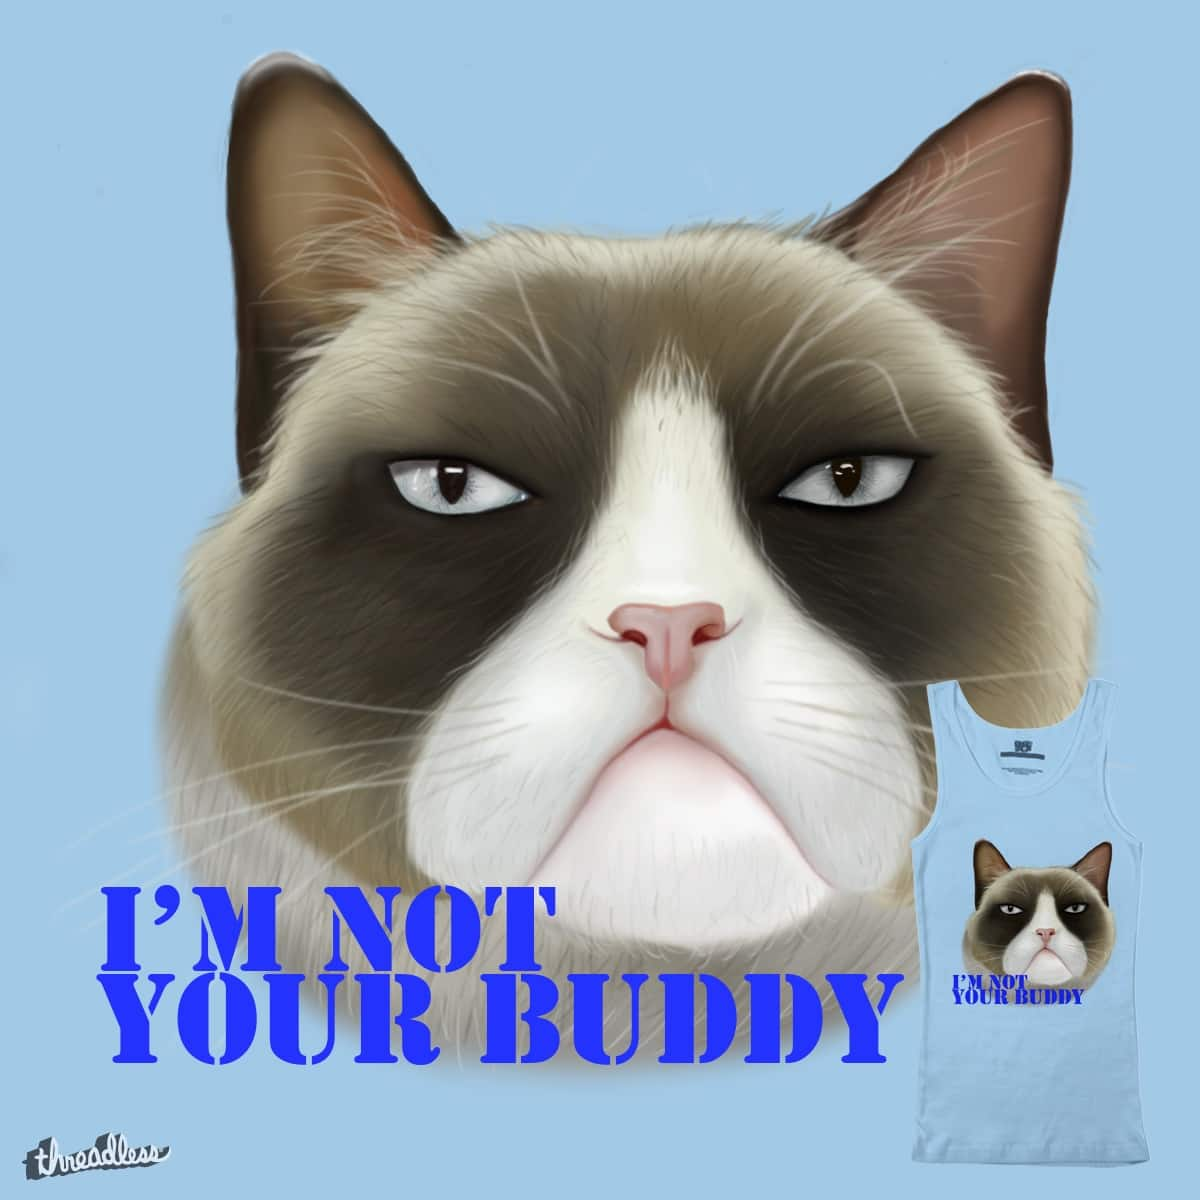 I'm not your buddy by Monkey_inc on Threadless